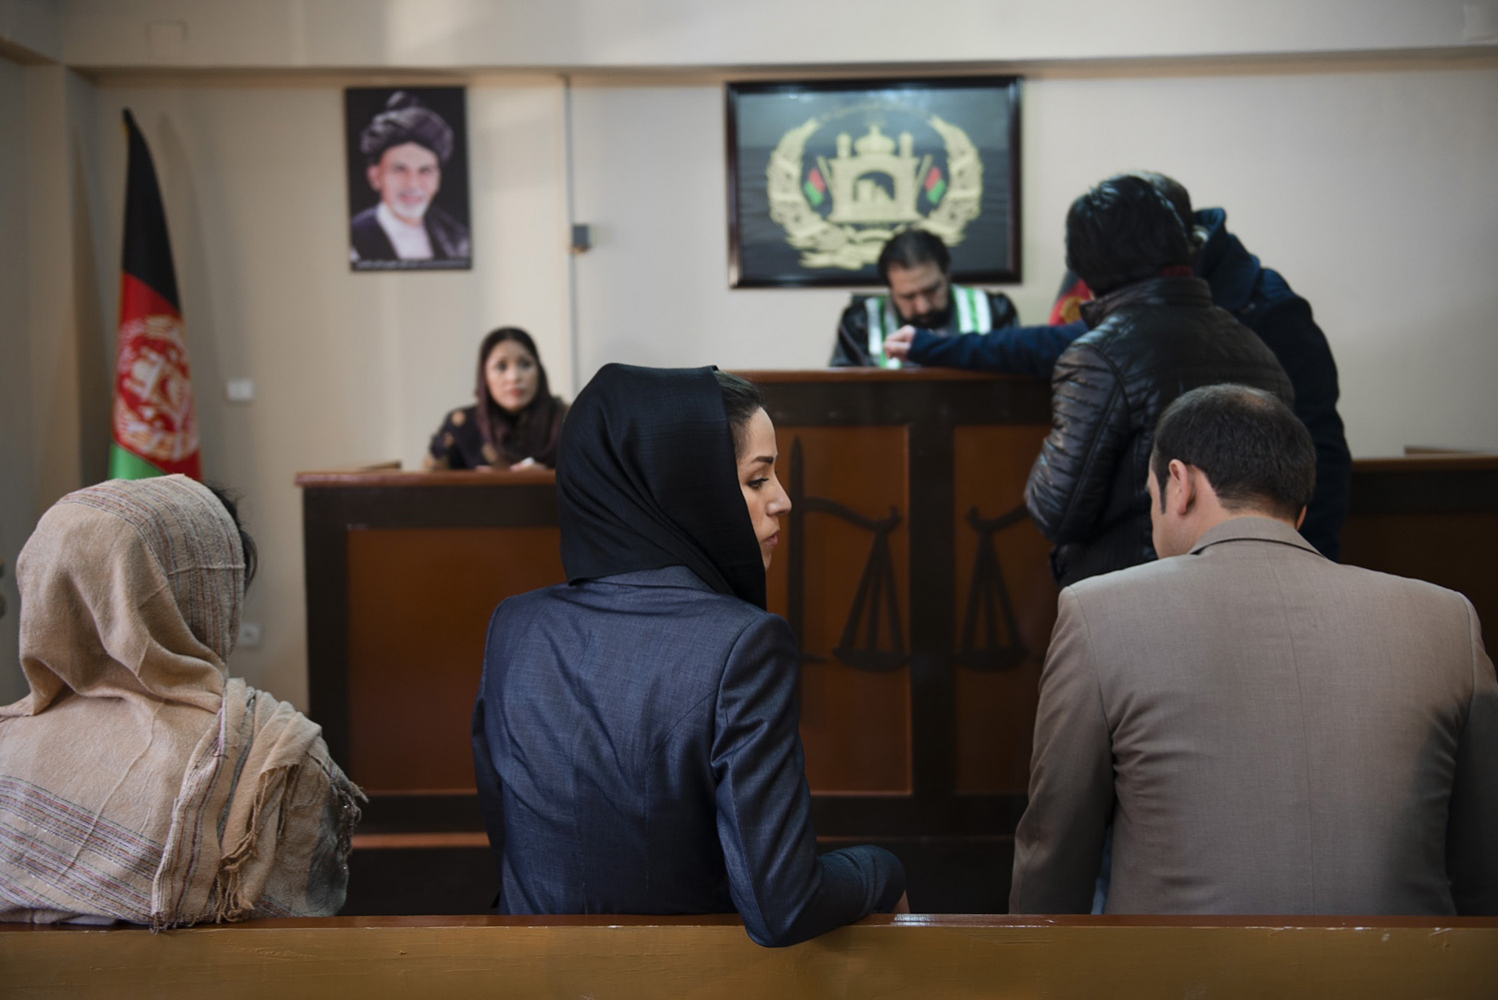 "KABUL, AFGHANISTAN | 2015-03-01 | The young cast on set at work behind the scenes of ""Shereen's Law"". ""Shereen's Law"", a disputed TV series which was due to be aired in early 2016 on Afghan TV, tells the story of a 36-year-old single mom who brings up three children on her own while forging a career as a clerk at a court in Kabul. While the main character, Shereen, fights corruption, harassment, and rape, decision makers at MOBY Group (the producing company) decided that the story is too controversial and may have back lashes. The production was suspended in summer 2015 and most of the key people including the director and screenwriter were dismissed."